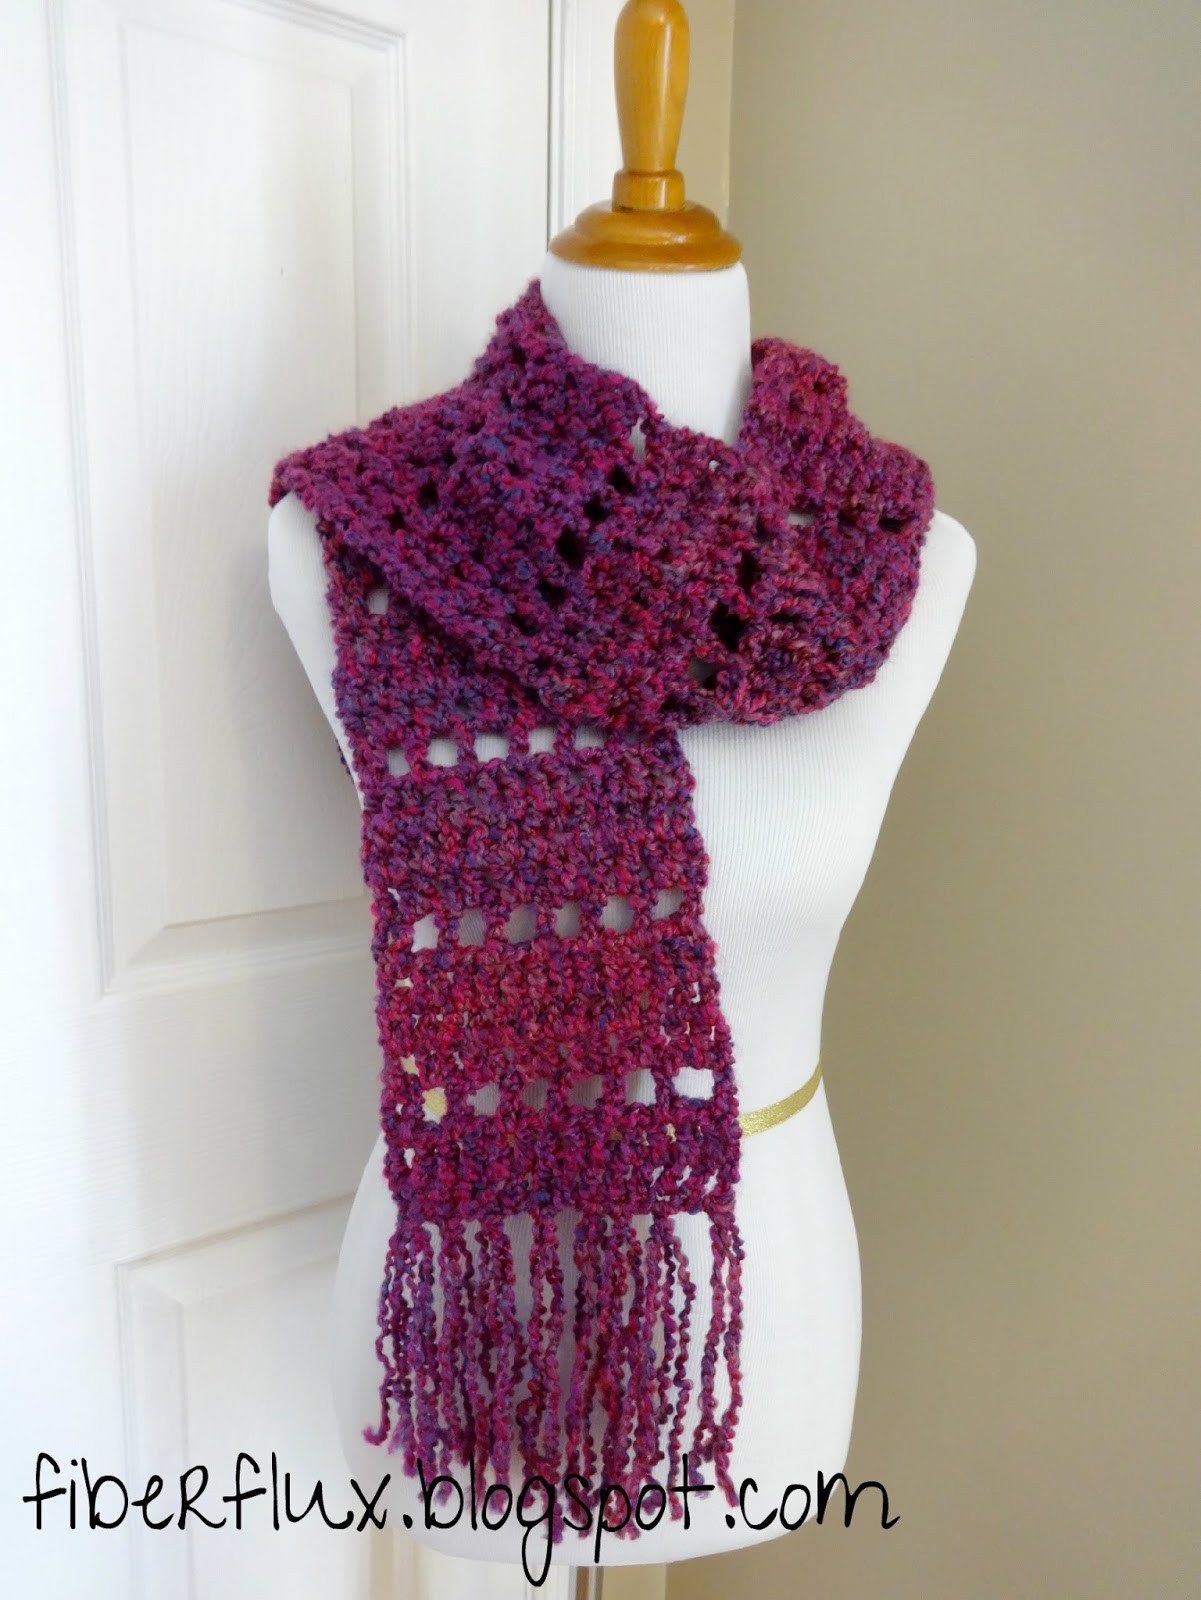 Free Crochet Scarf Patterns Awesome Fiber Flux Free Crochet Pattern Mulberry Scarf Of Charming 48 Images Free Crochet Scarf Patterns